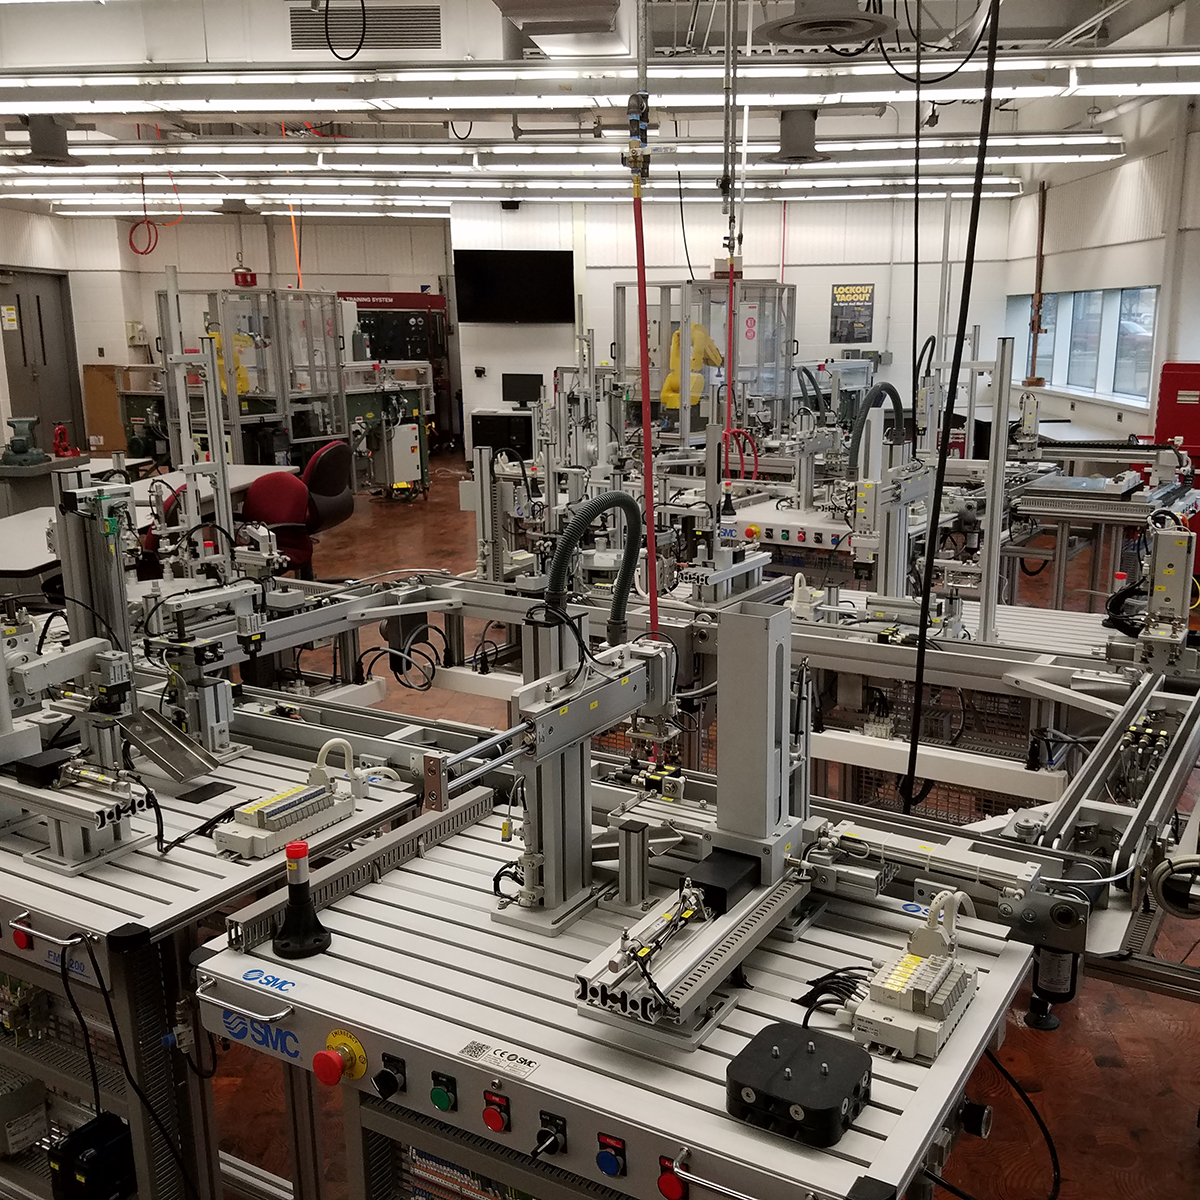 Photograph of machinery inside electronic engineering lab